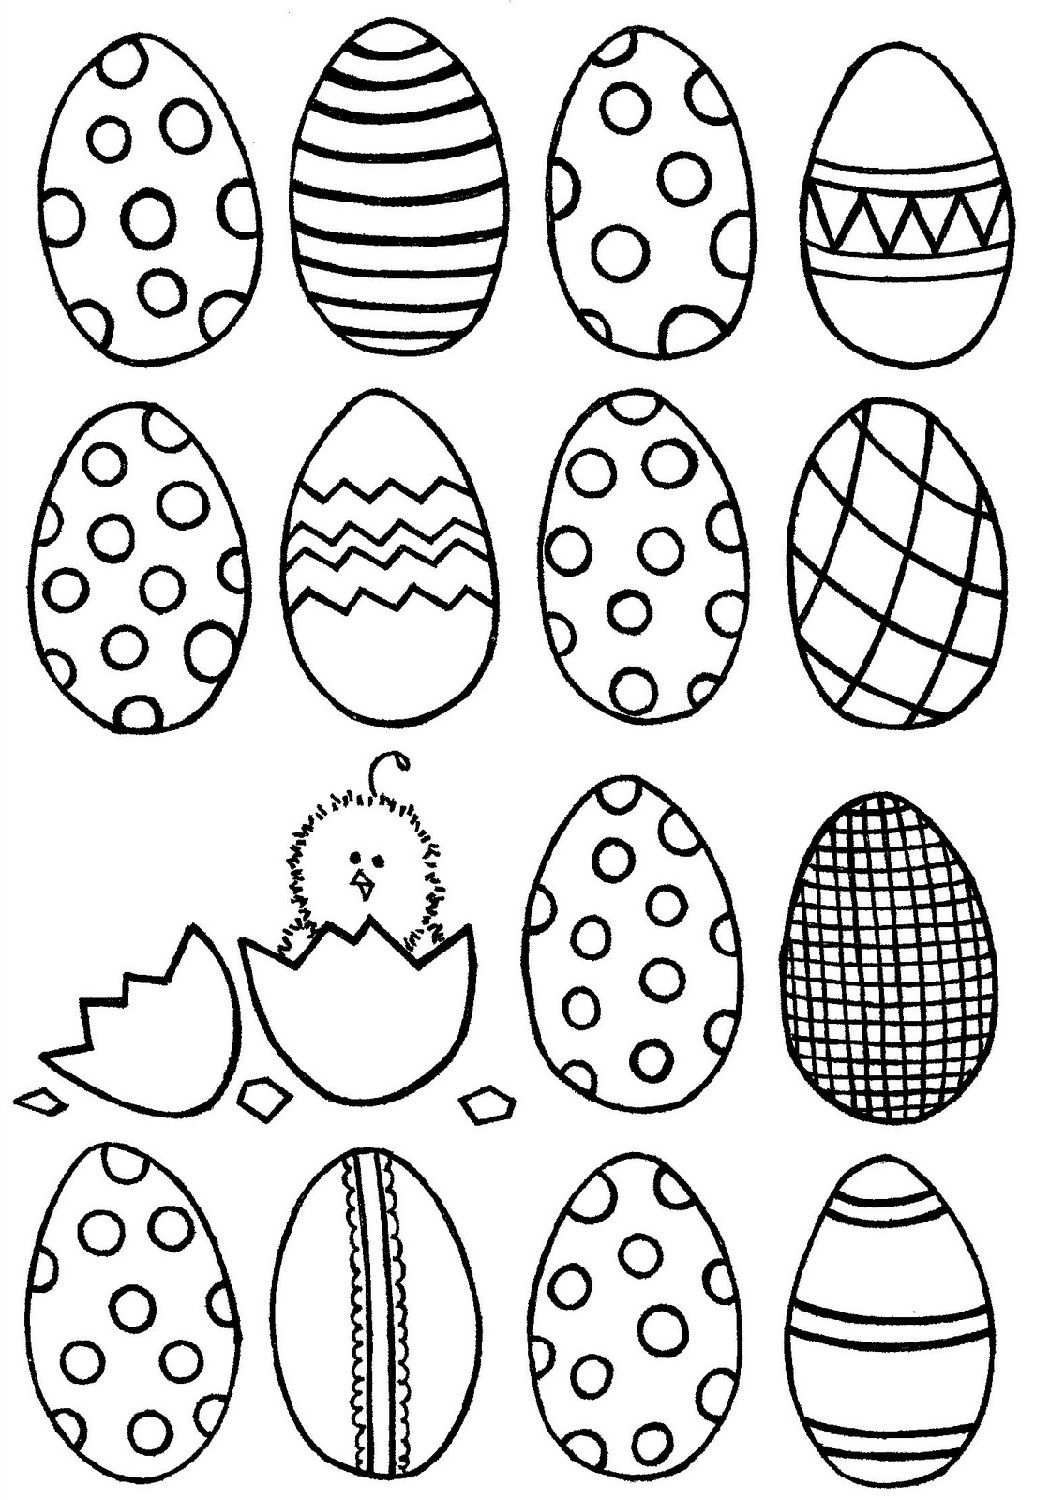 Blank Easter Egg Templates Easter Egg Template Easter Coloring Pages Egg Template